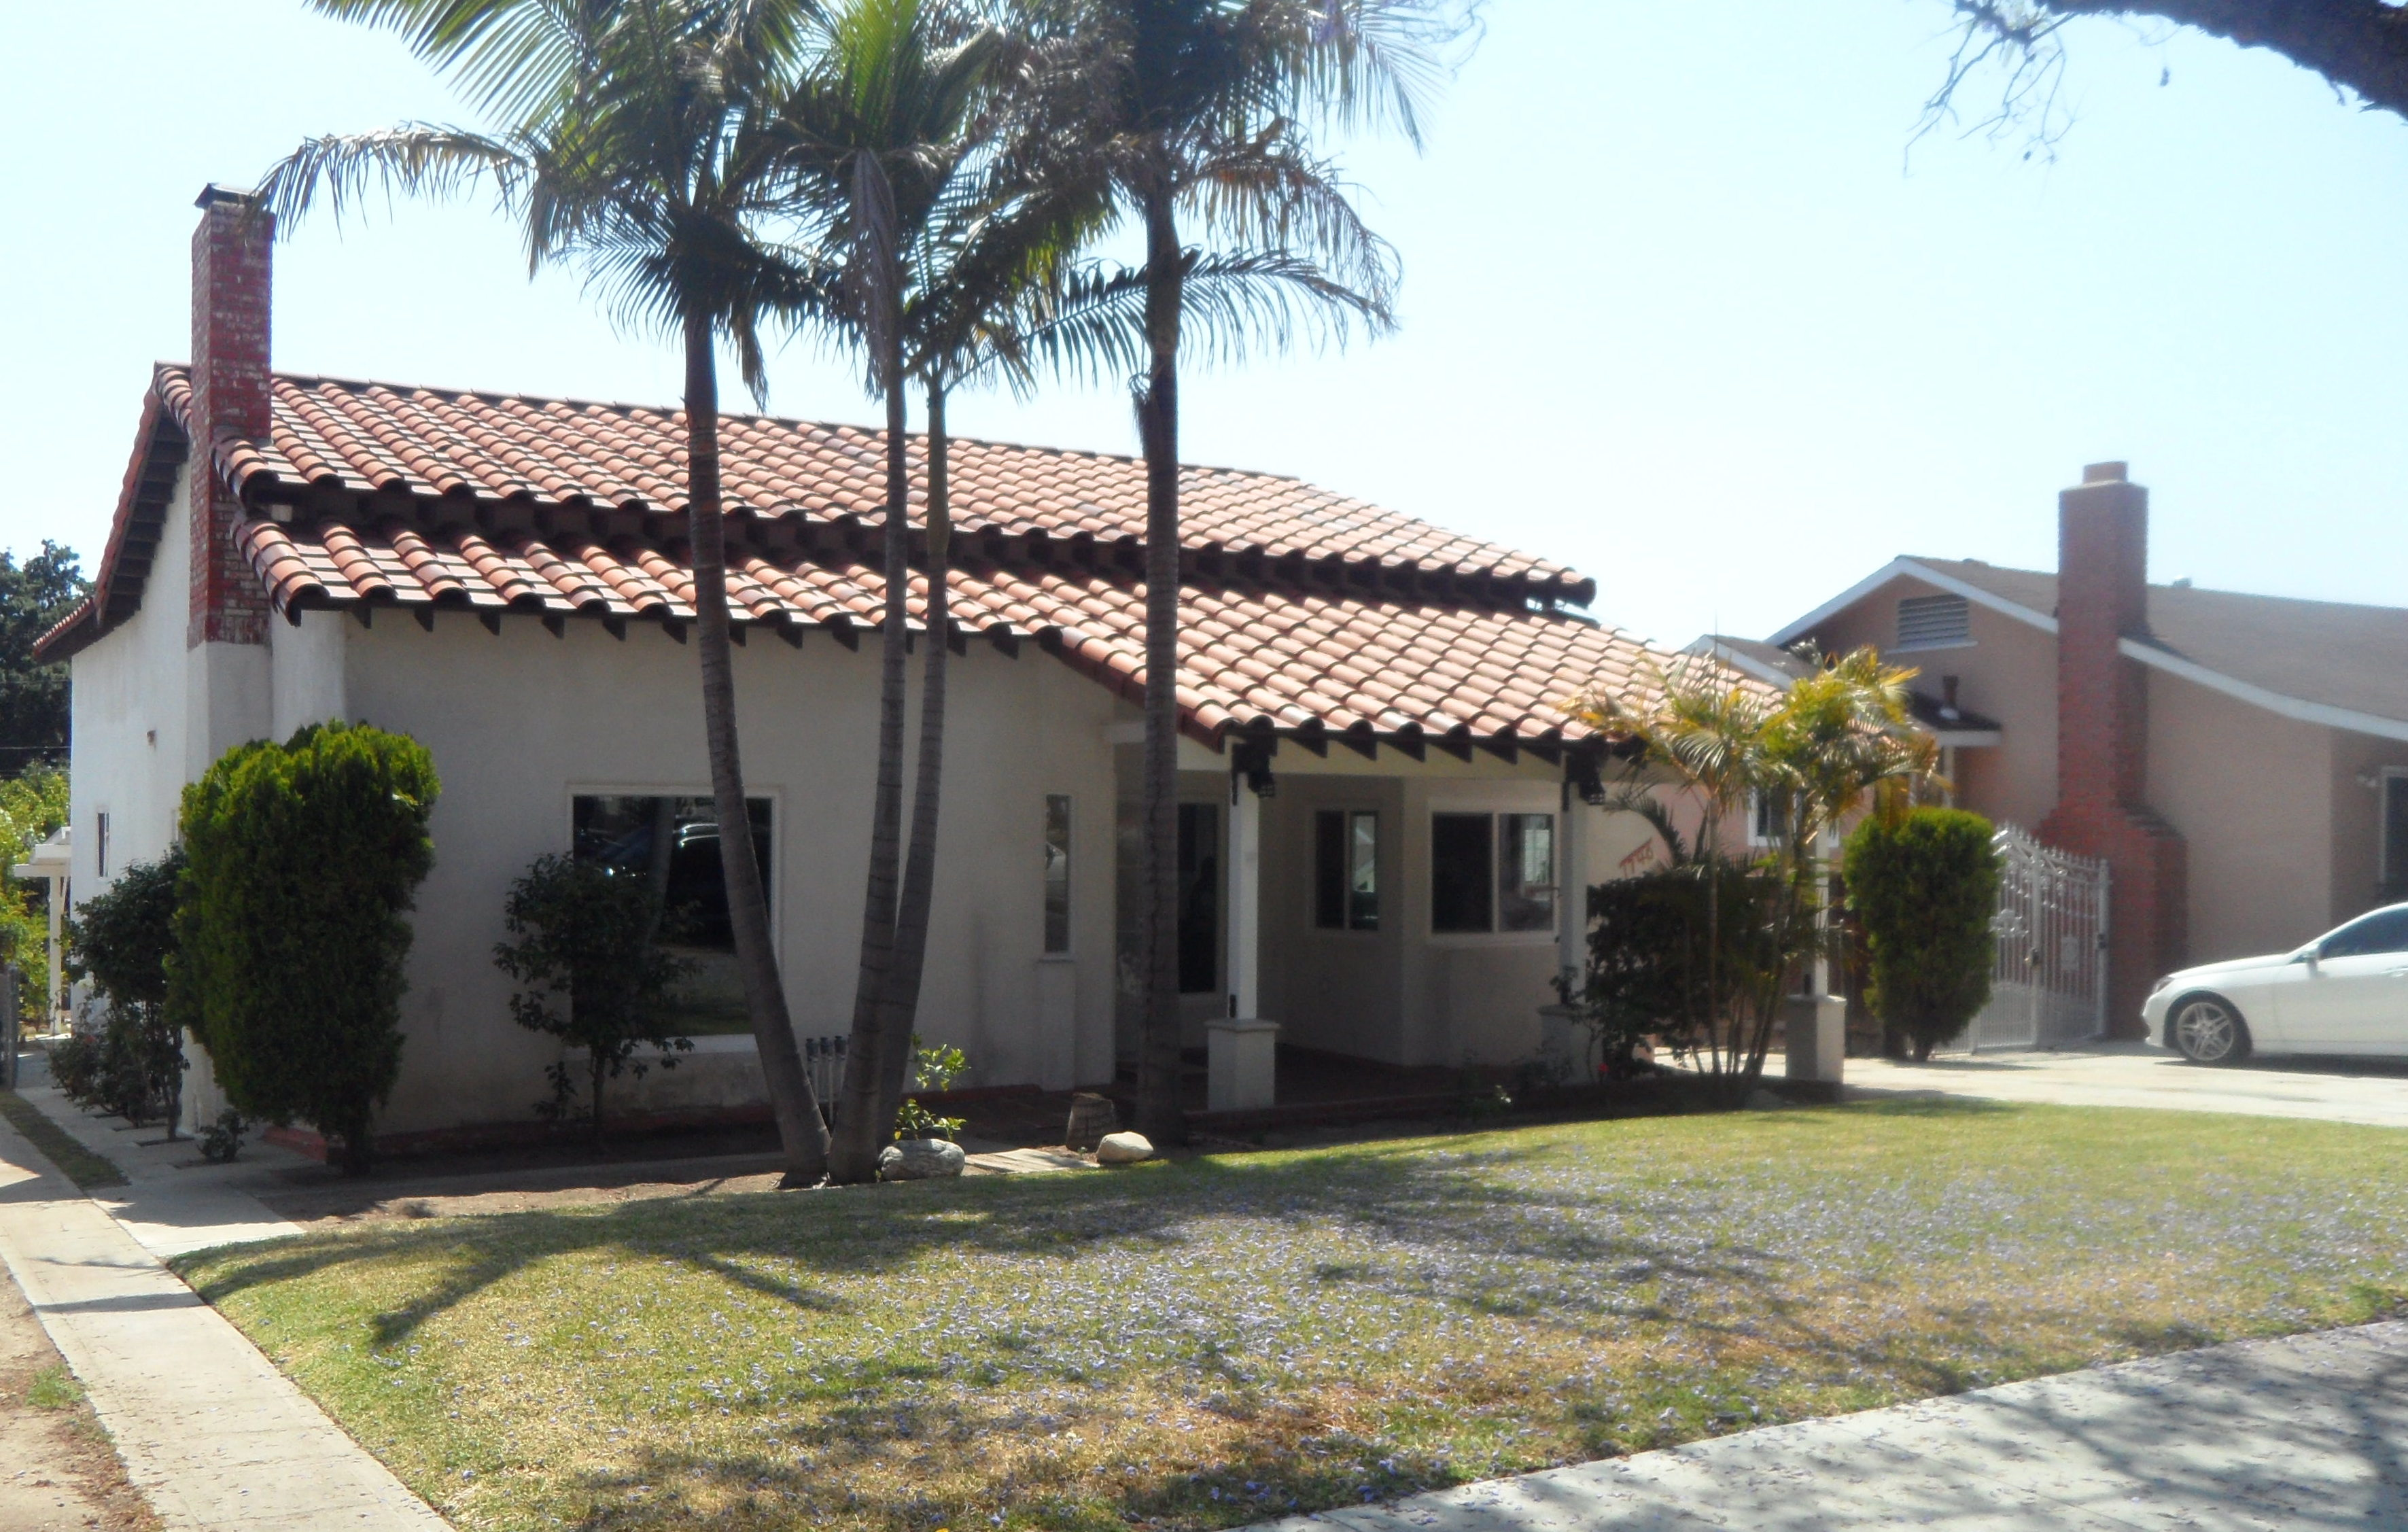 1740 W. Kenneth Rd.  Glendale – SOLD!